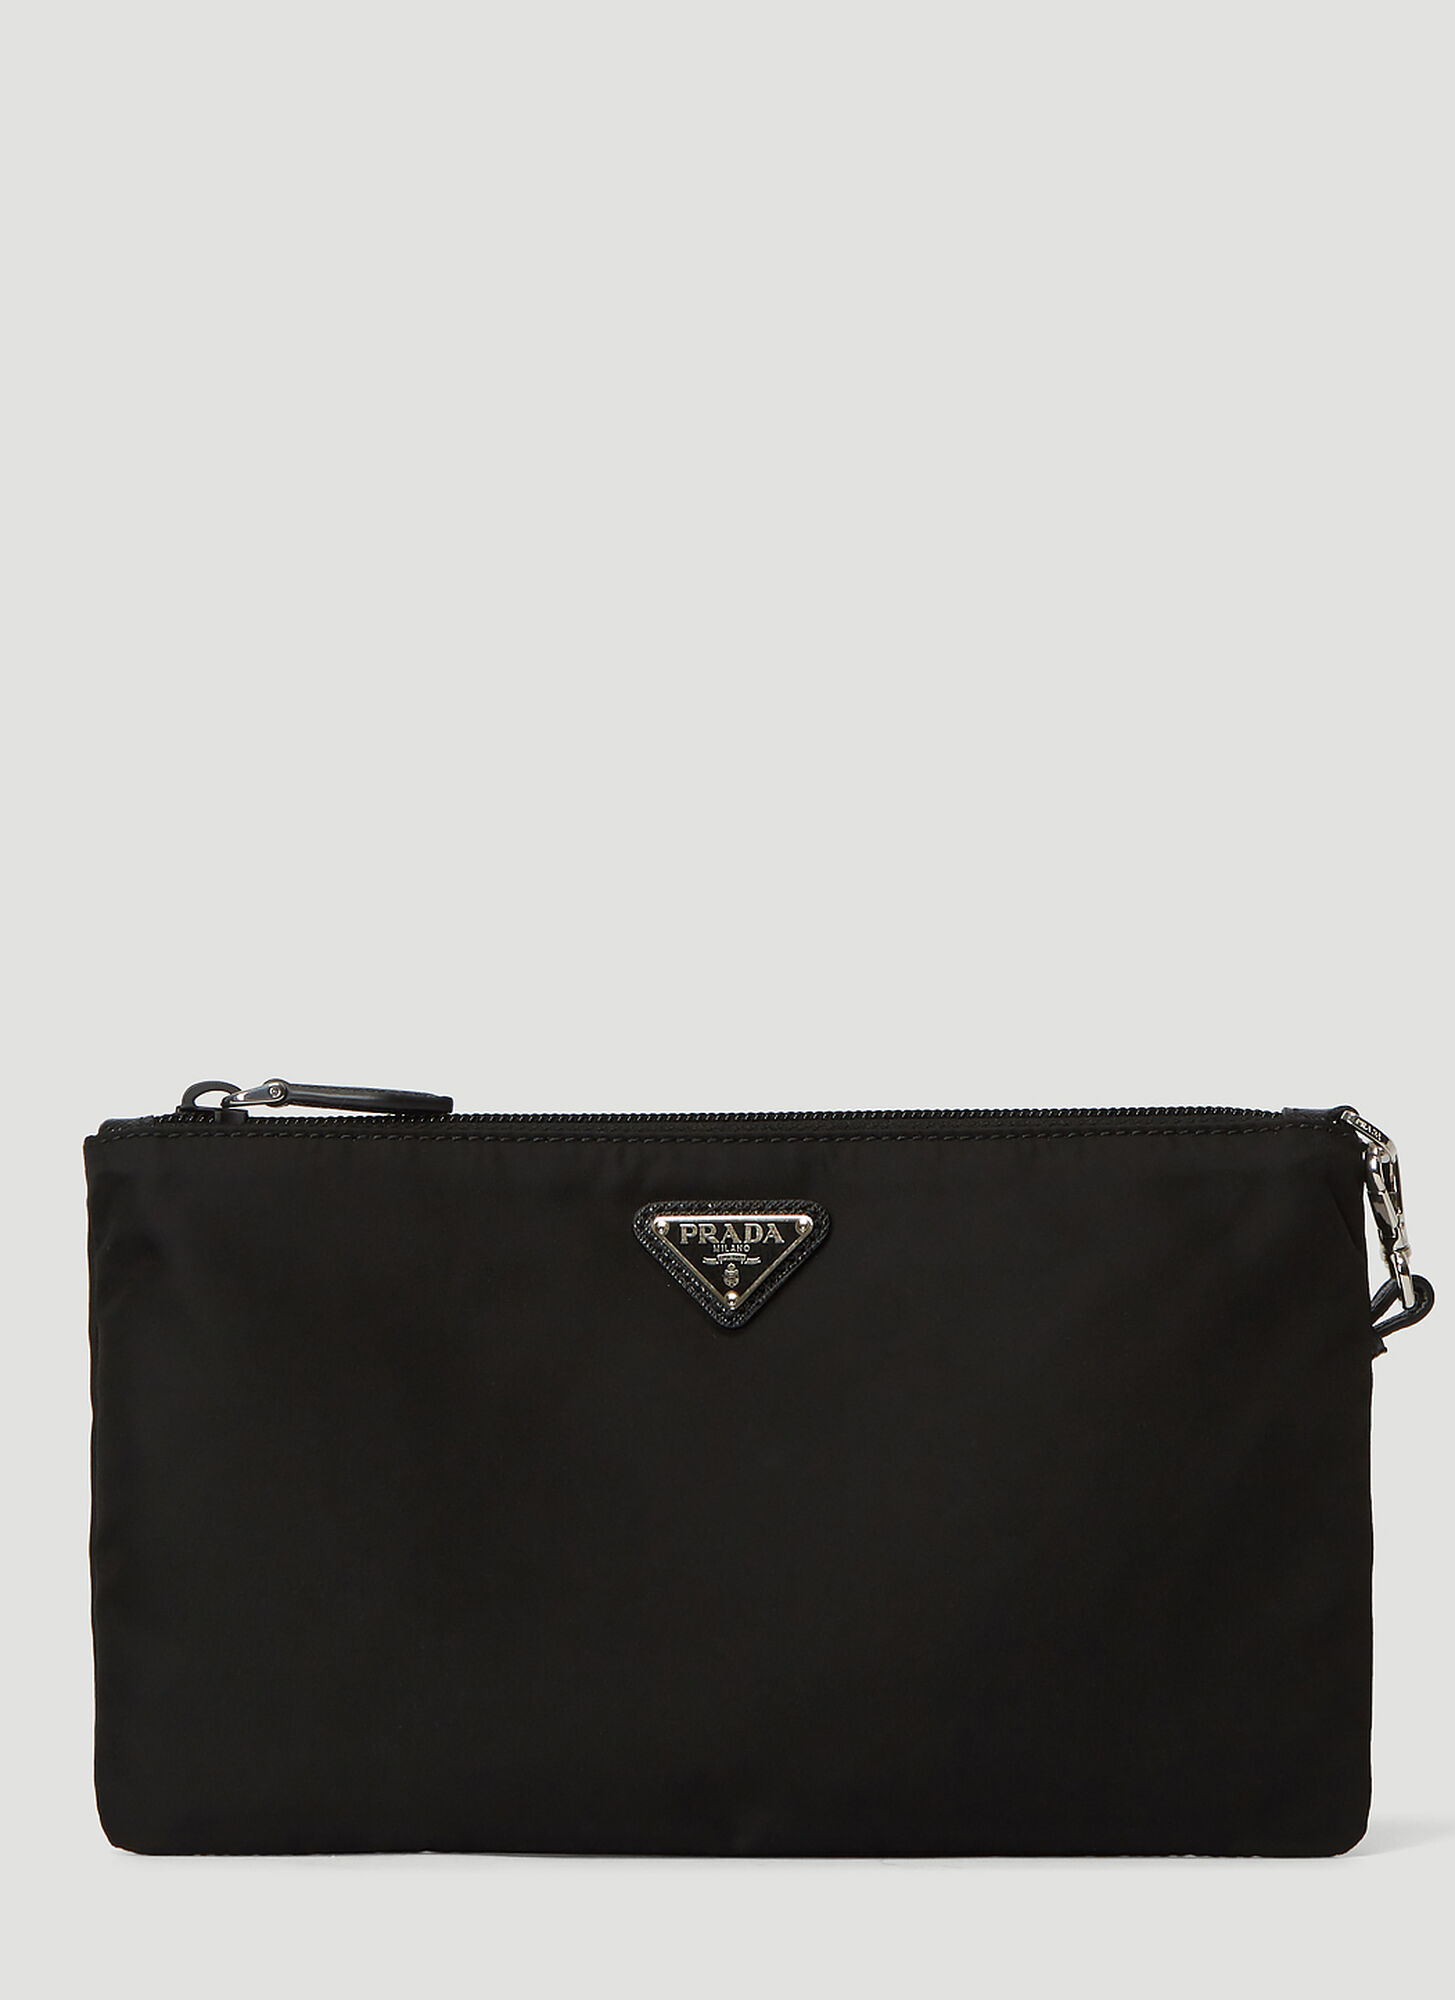 Prada Nylon Pouch in Black